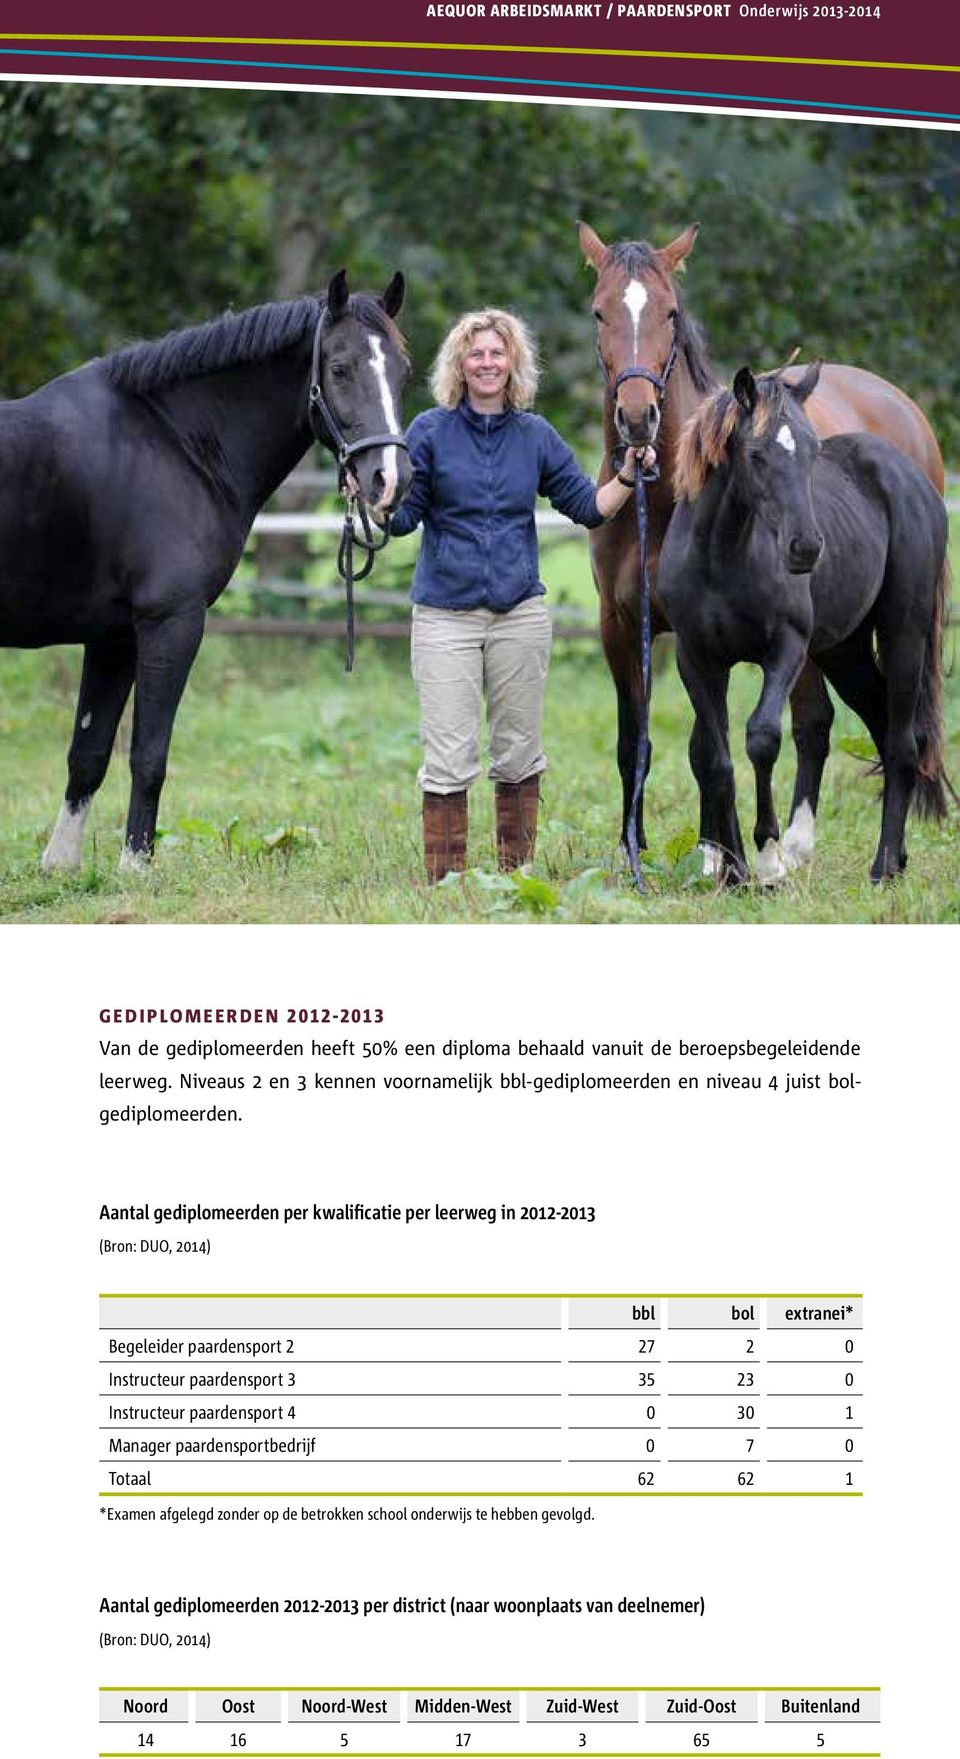 Aantal gediplomeerden per kwalificatie per leerweg in 2012-2013 bbl bol extranei* Begeleider paardensport 2 27 2 0 Instructeur paardensport 3 35 23 0 Instructeur paardensport 4 0 30